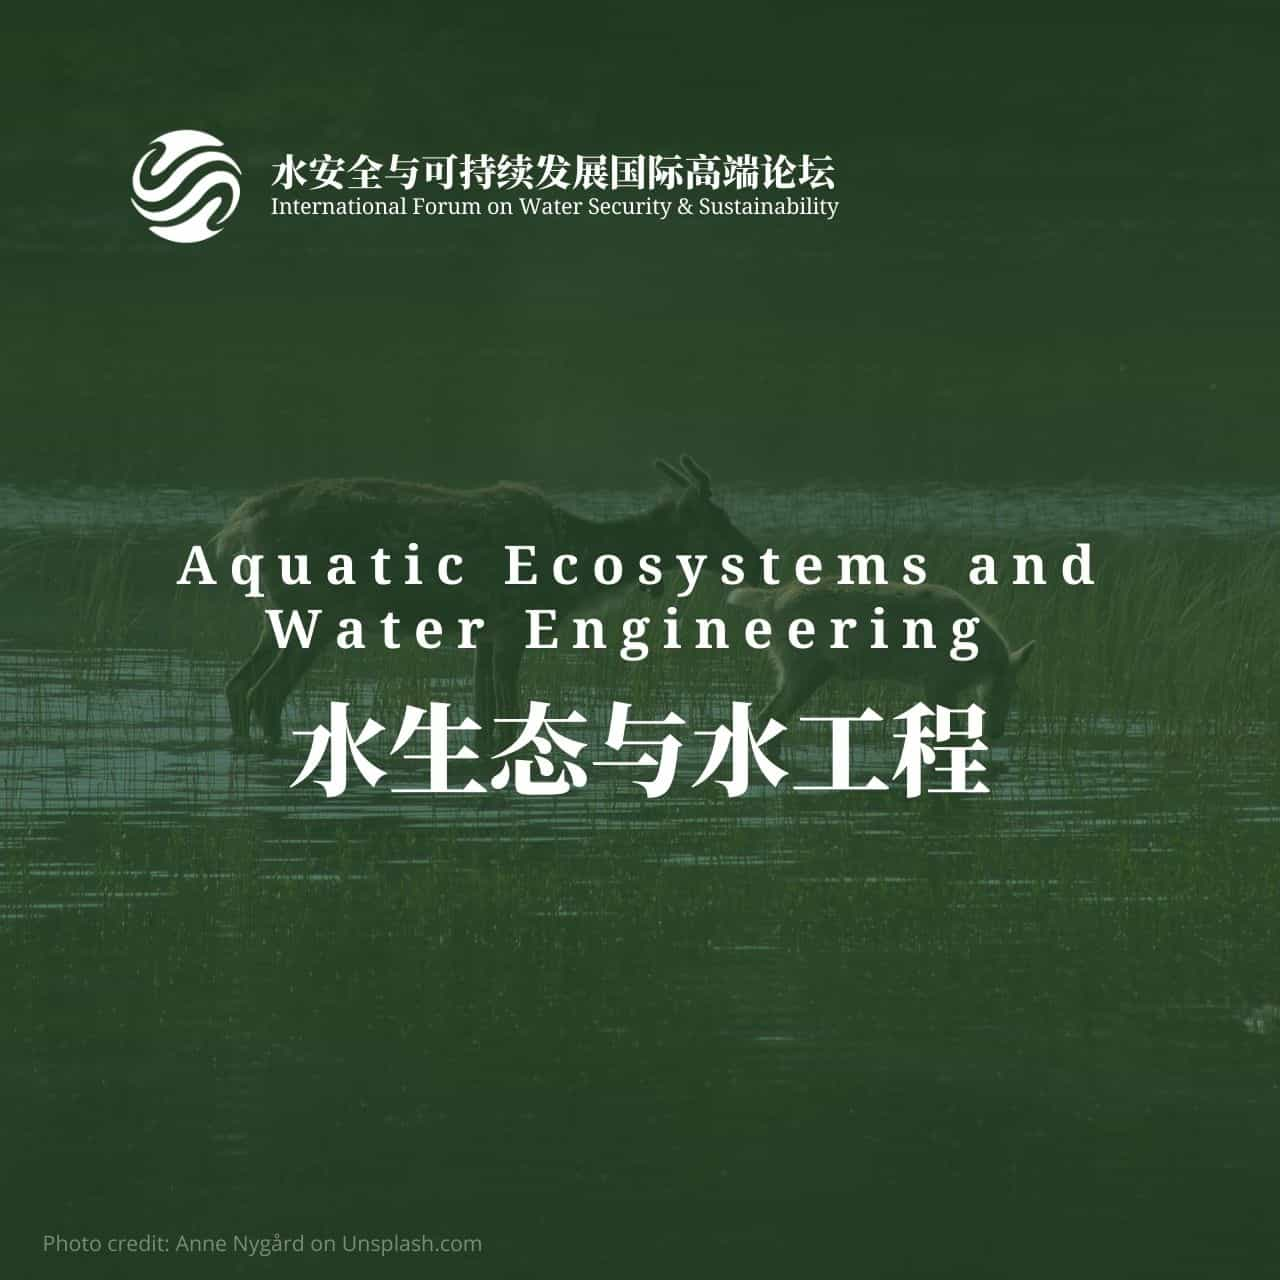 Aquatic ecosystems and water engineering